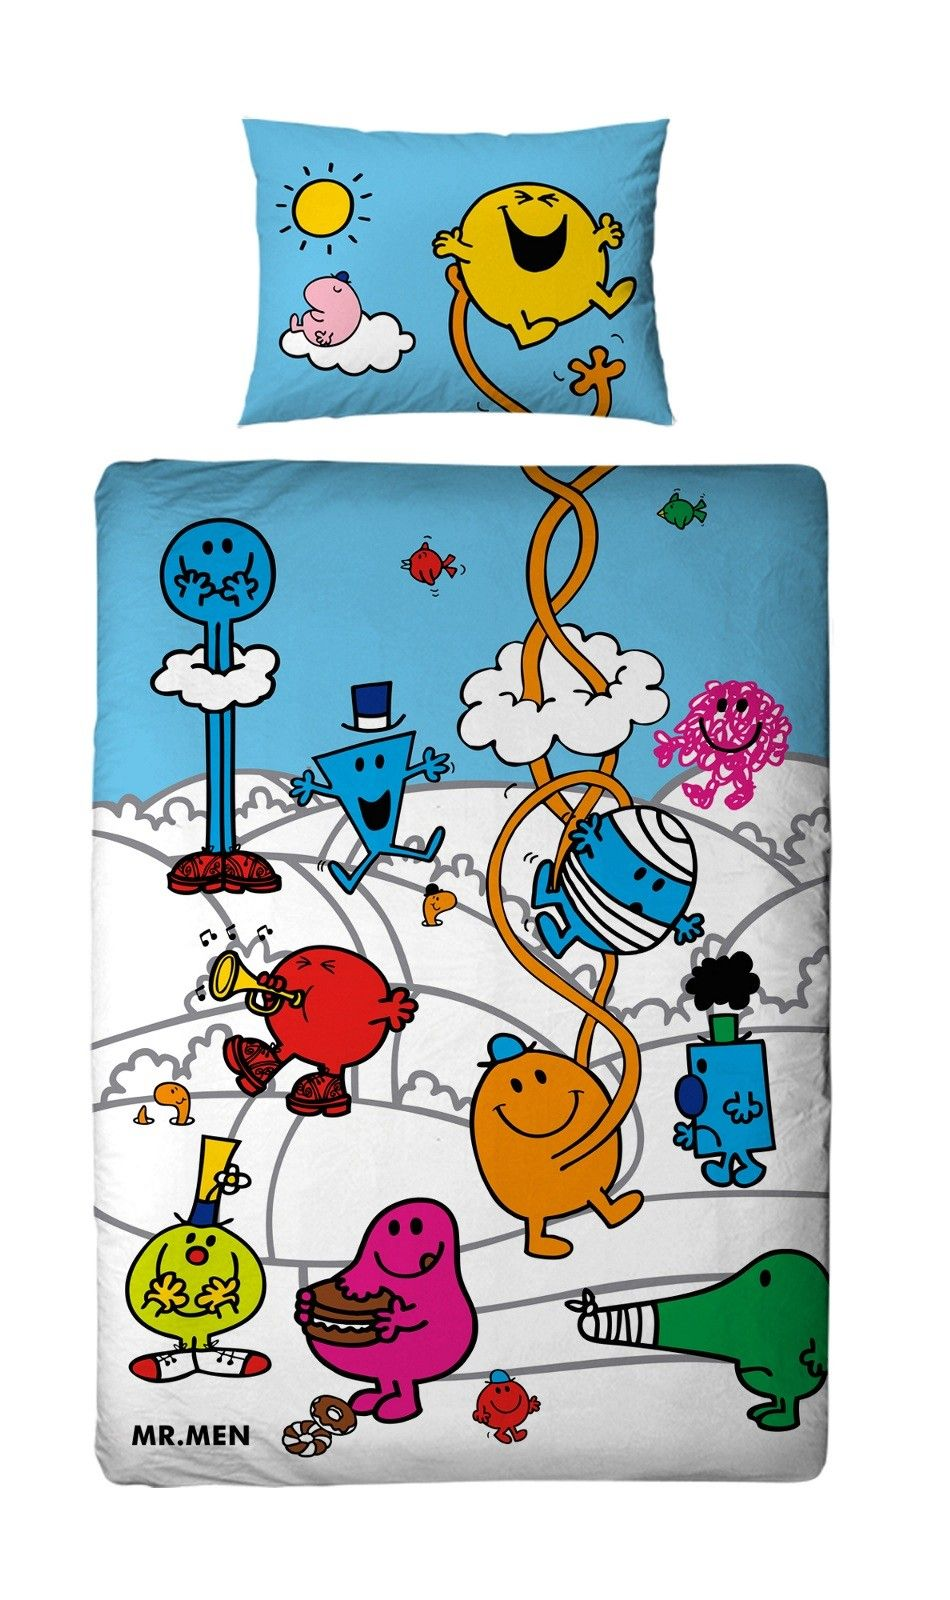 parure de lit enfant r versible mr men little miss monsieur madame parures de lit